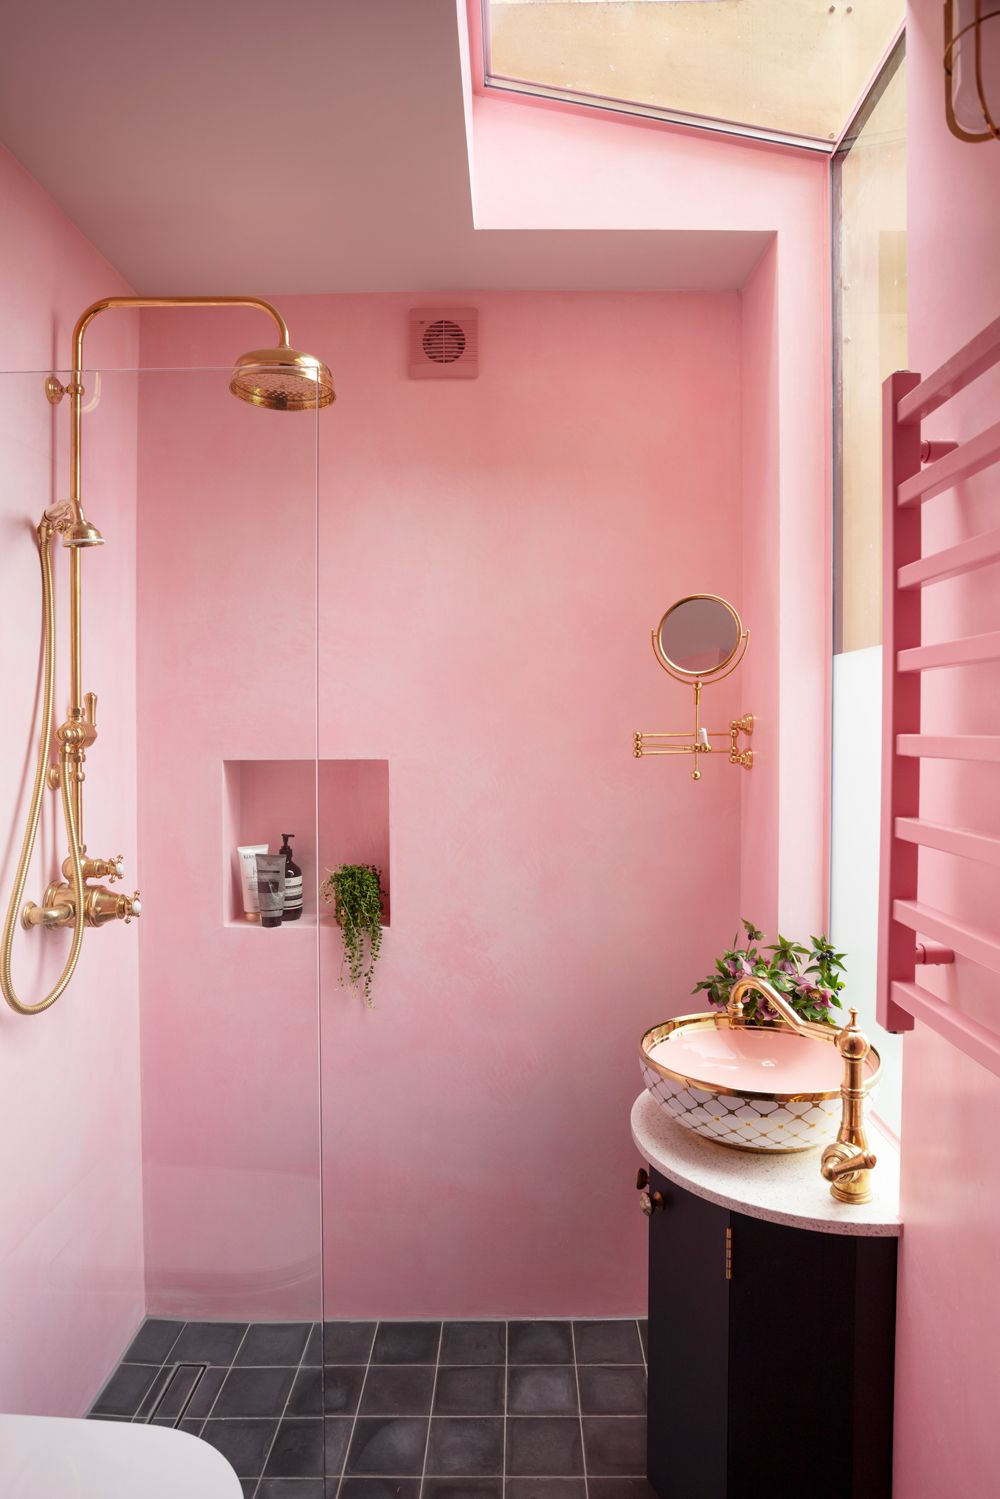 12 Of The Most Stylish Pink Bathroom Ideas For A Stunning Pink